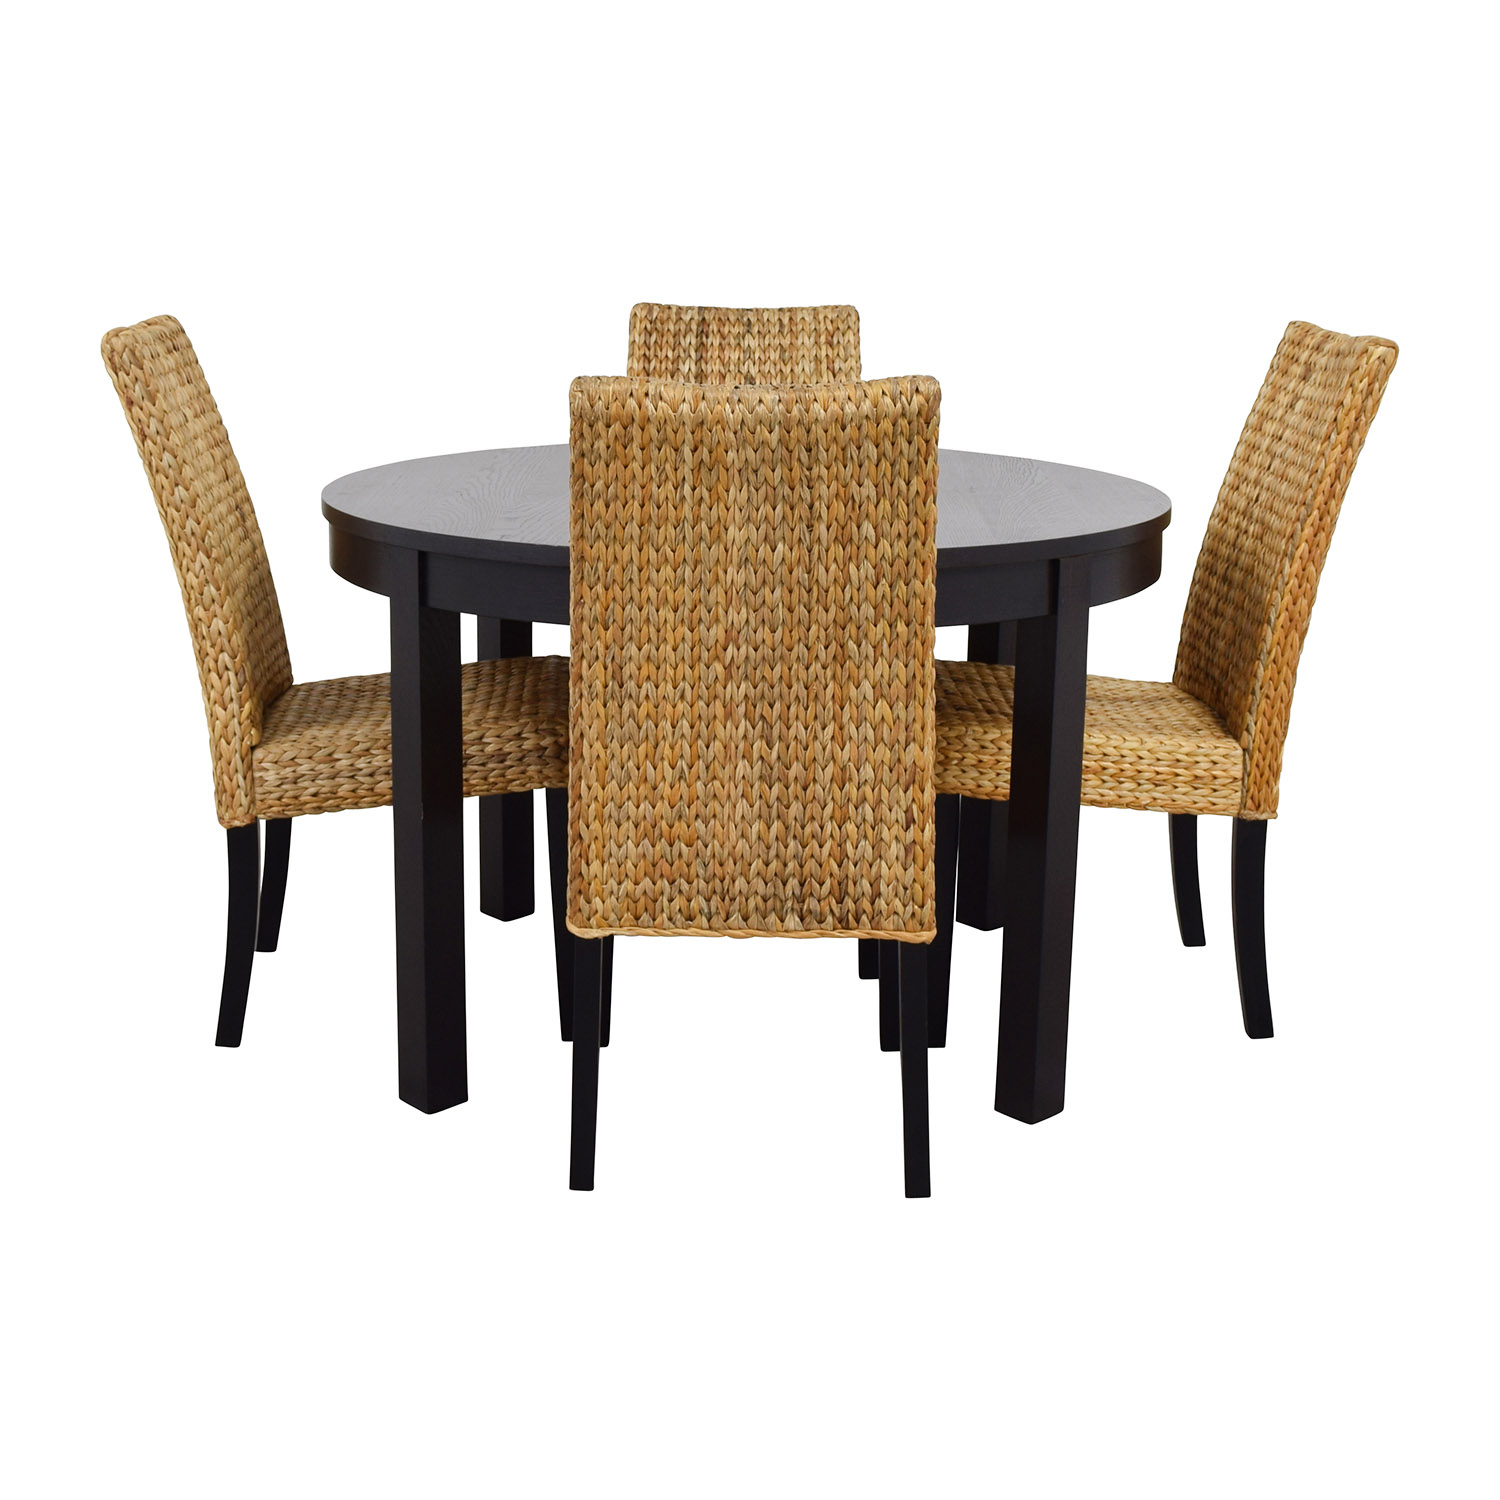 66 off macy 39 s ikea round black dining table set with for Black round dining table